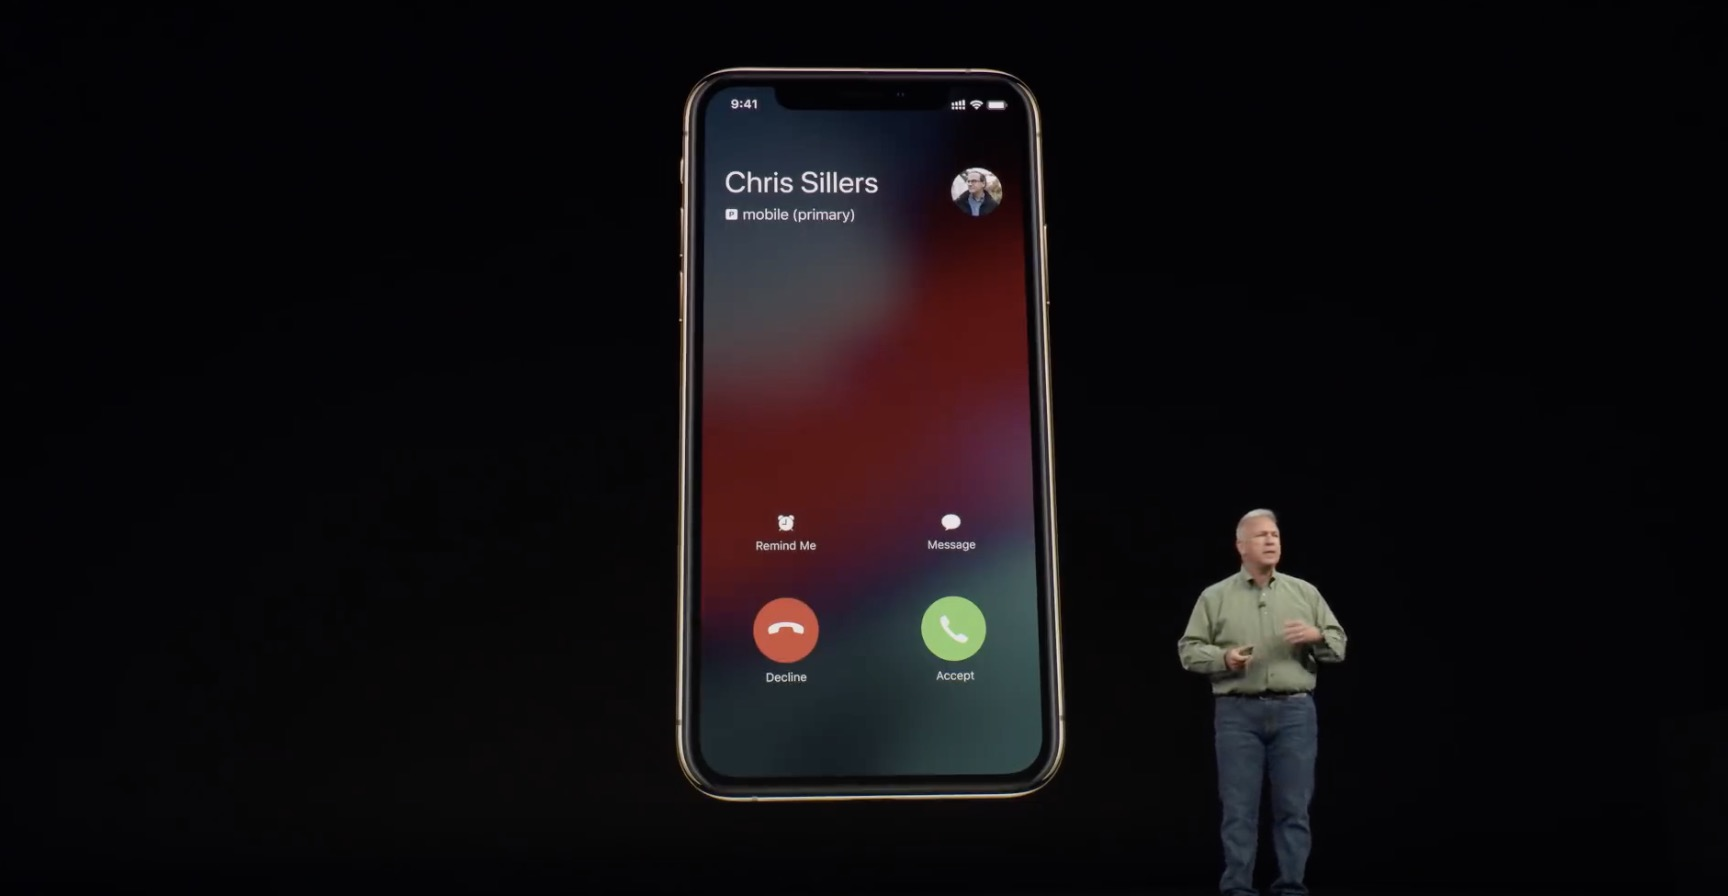 iOS 12 1 beta 1 enables eSIM functionality, but you'll need